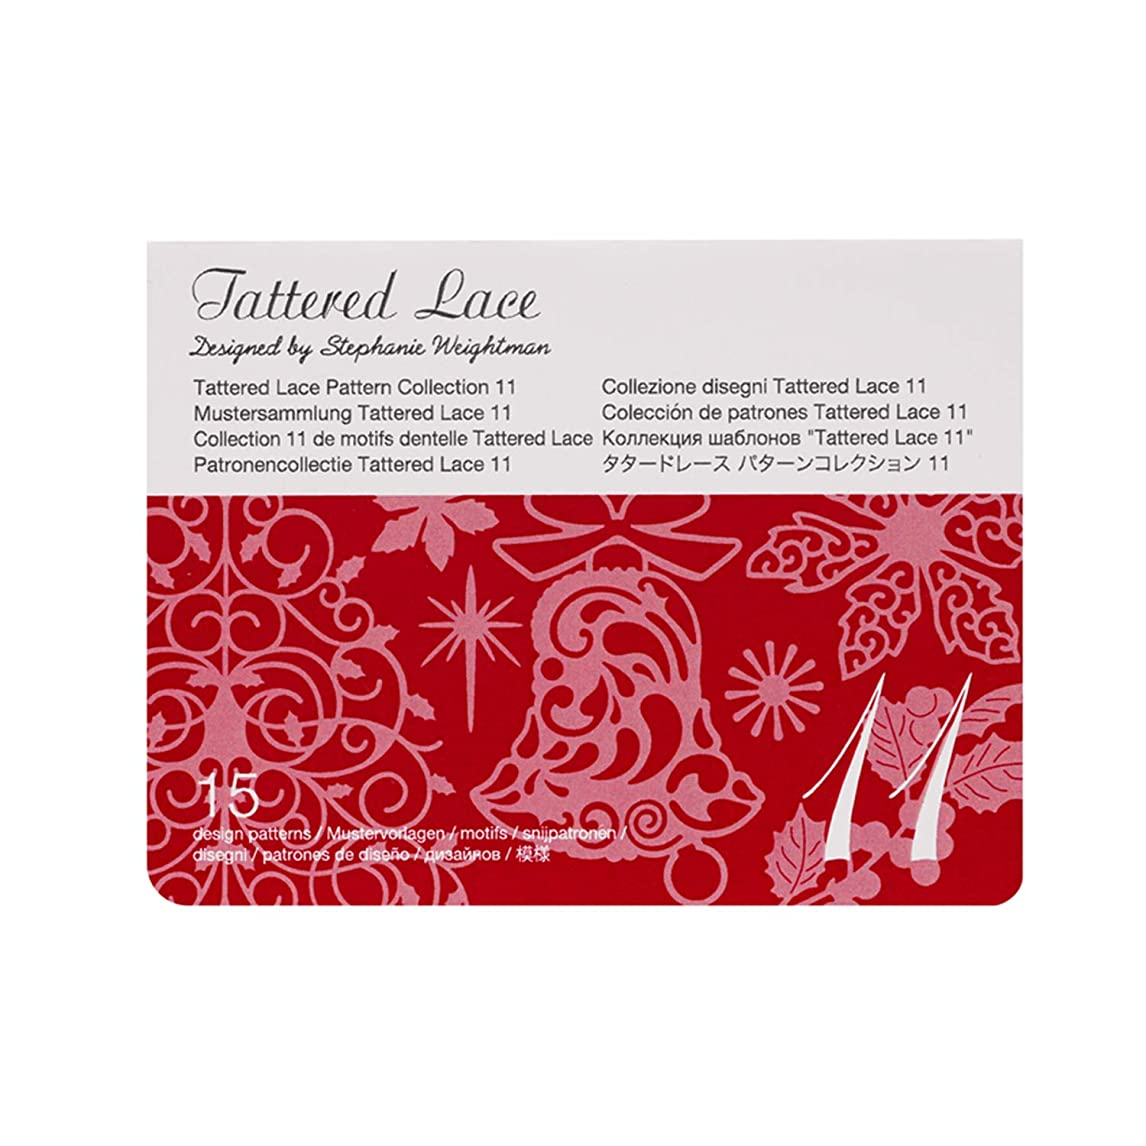 Brother CATTLP11 ScanNCut Series Tattered Lace 11 Pattern Collection, White egrk5701585364